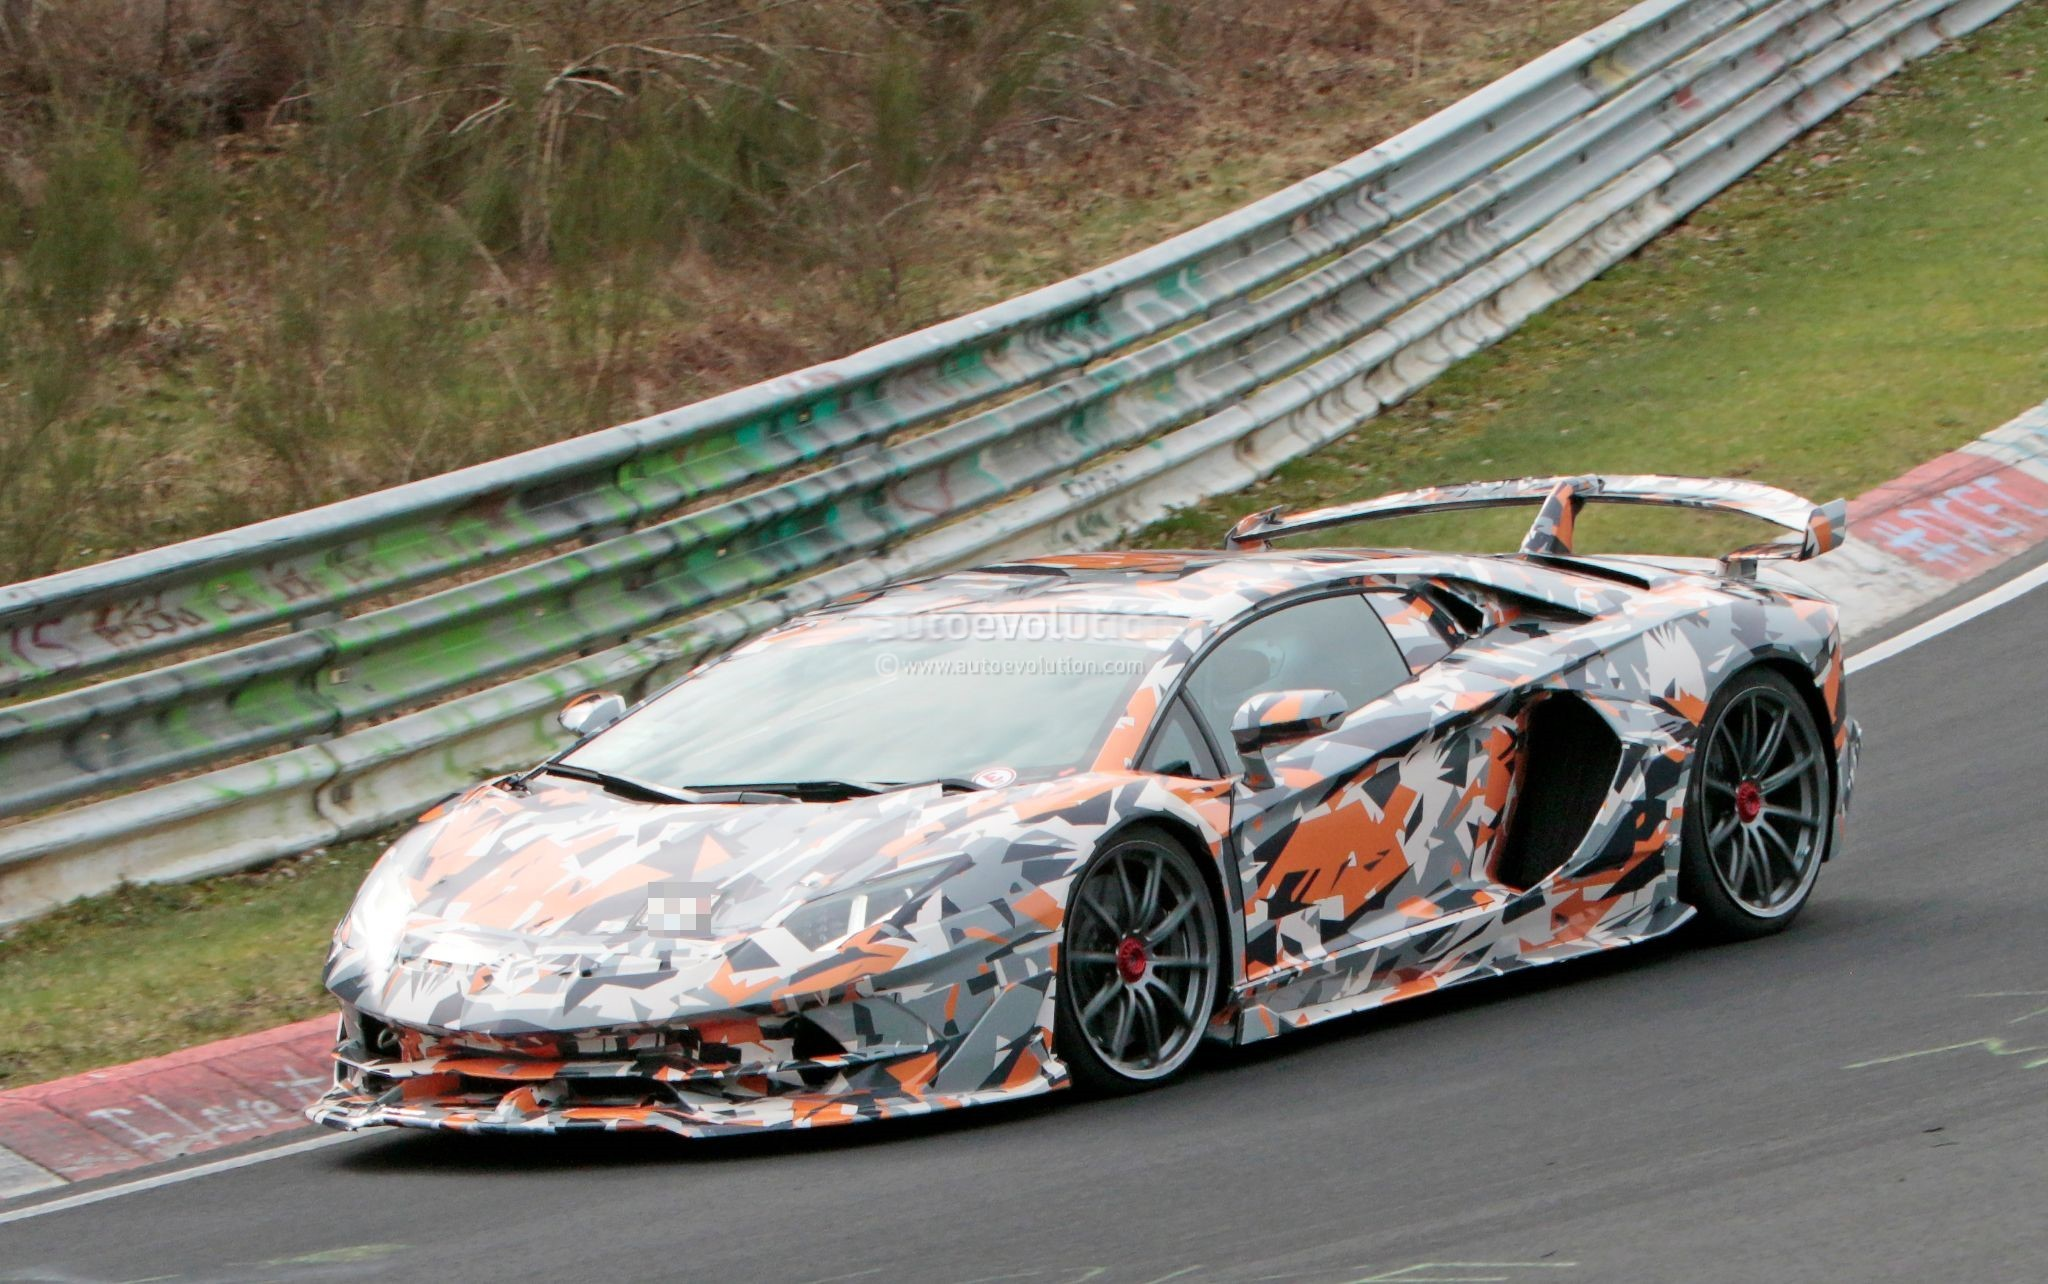 2019 lamborghini aventador svj could be the nurburgring s fastest production car autoevolution. Black Bedroom Furniture Sets. Home Design Ideas